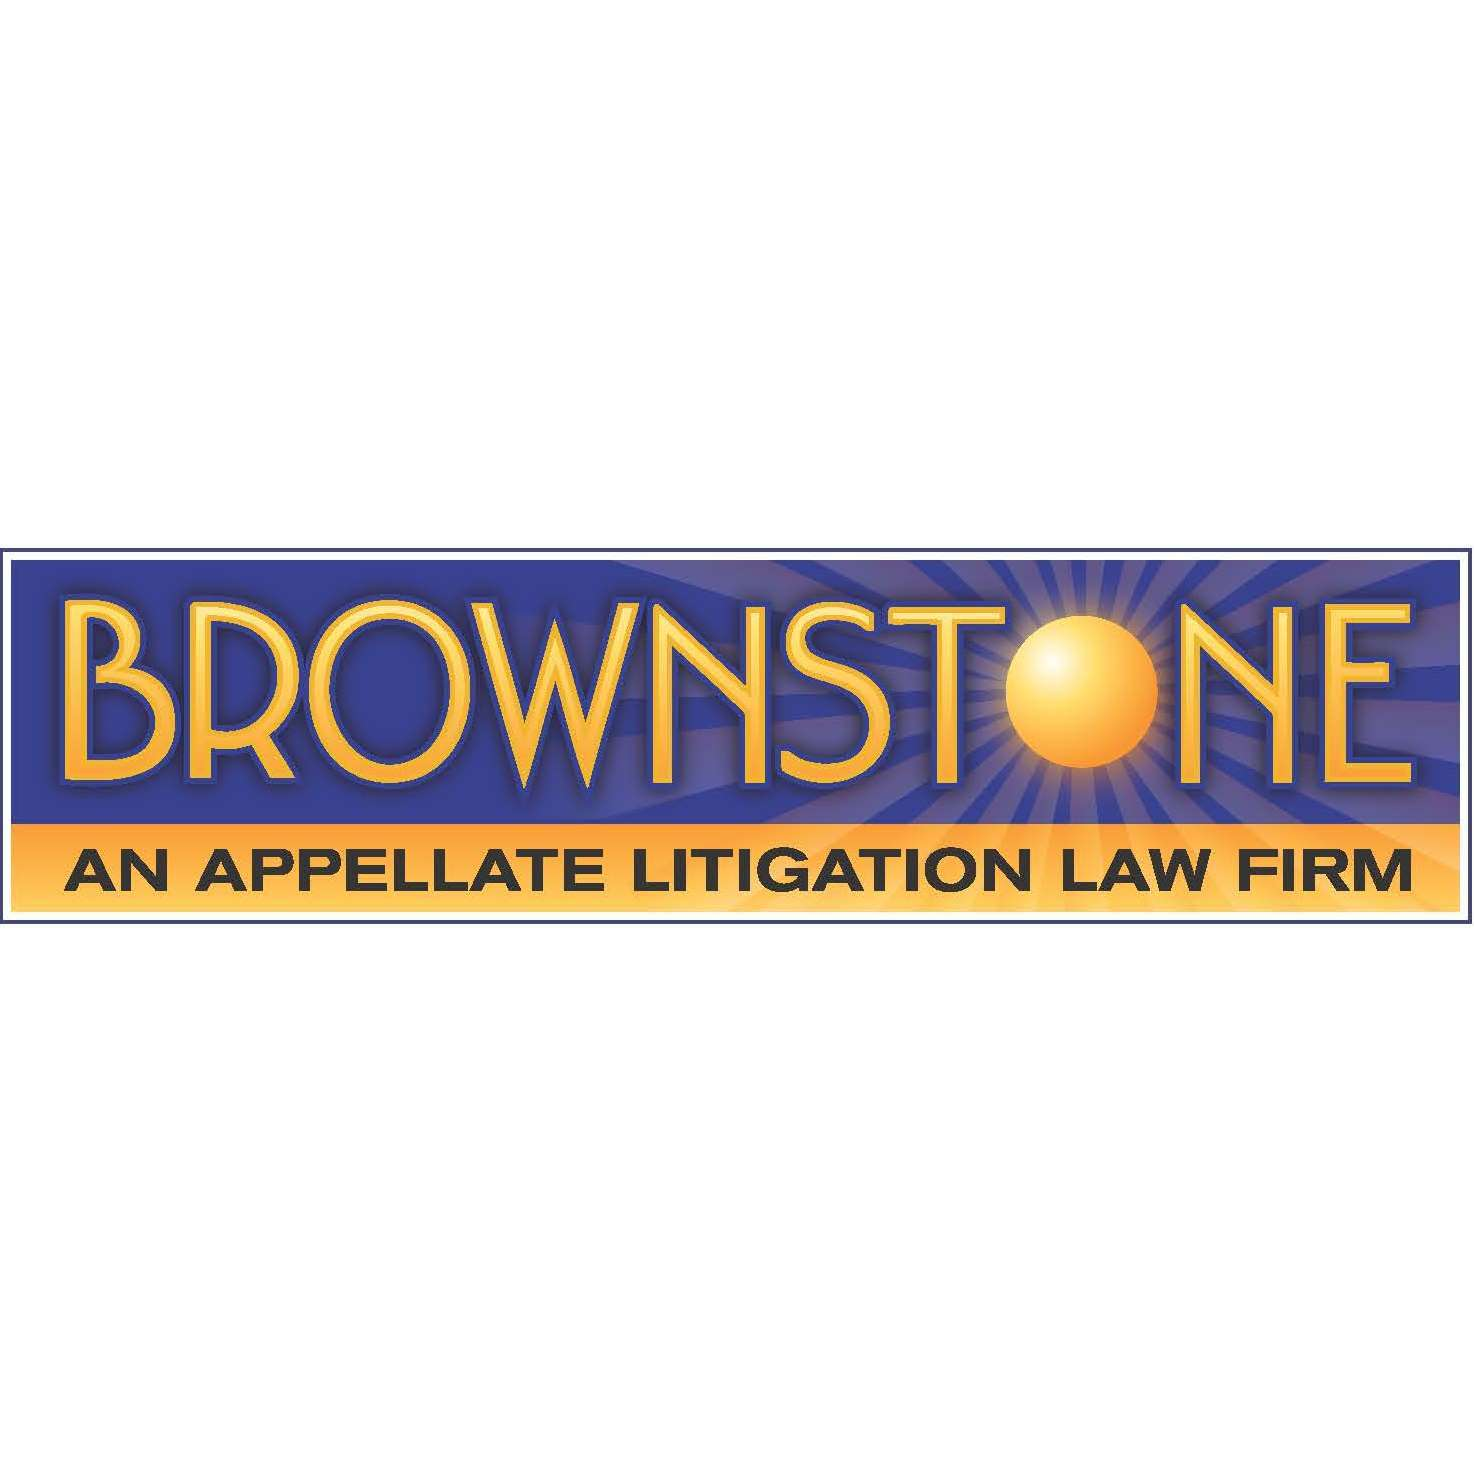 Brownstone Appellate Law Firm